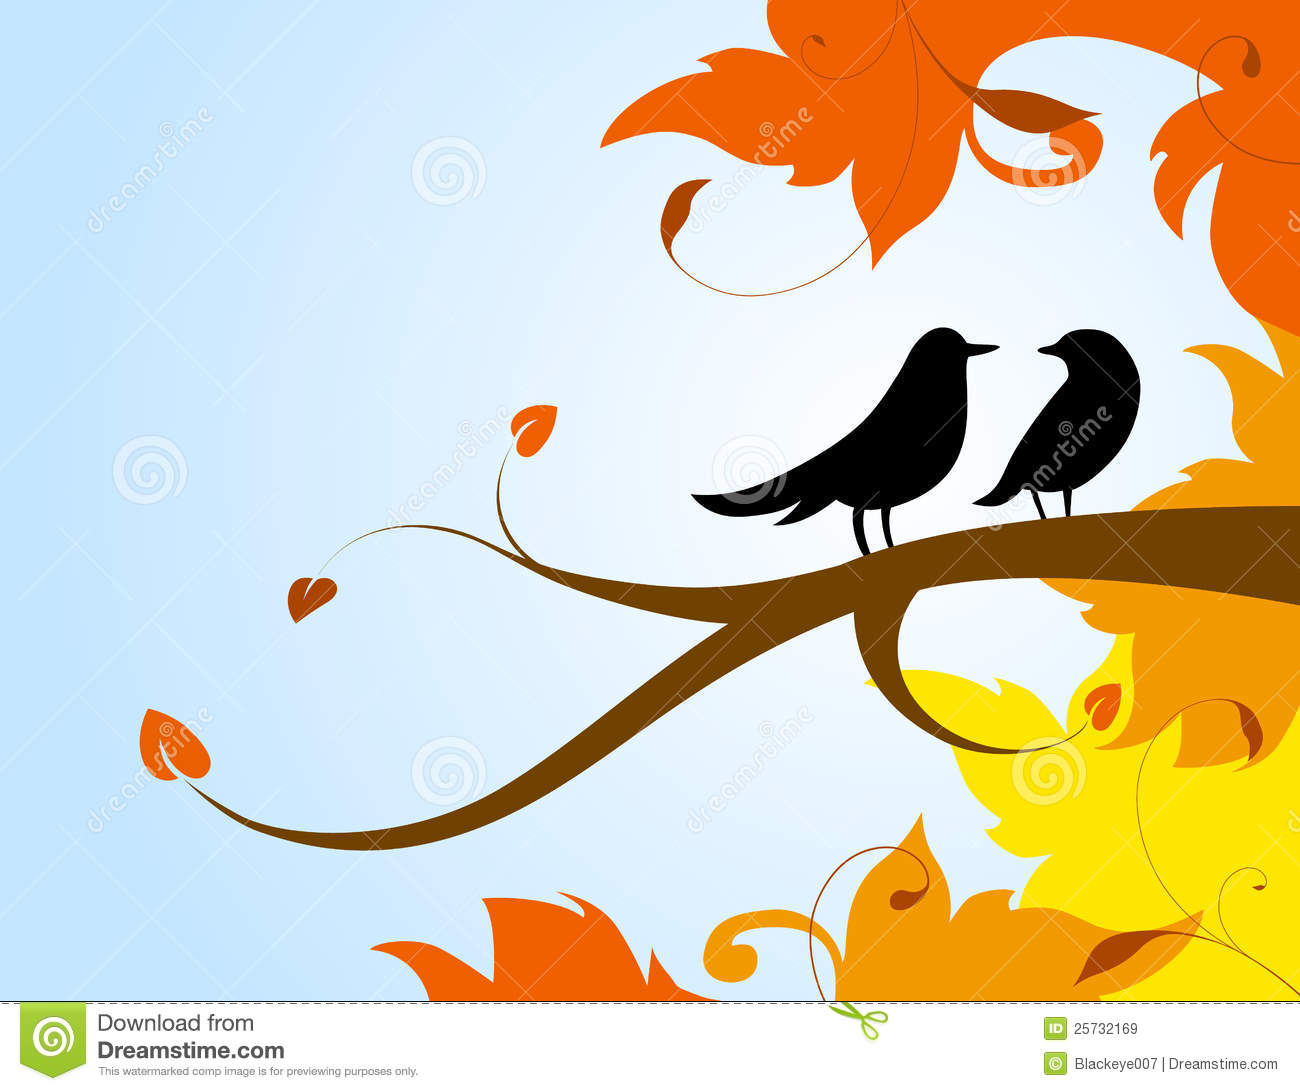 A pair of birds on a branch with the autumn leaves